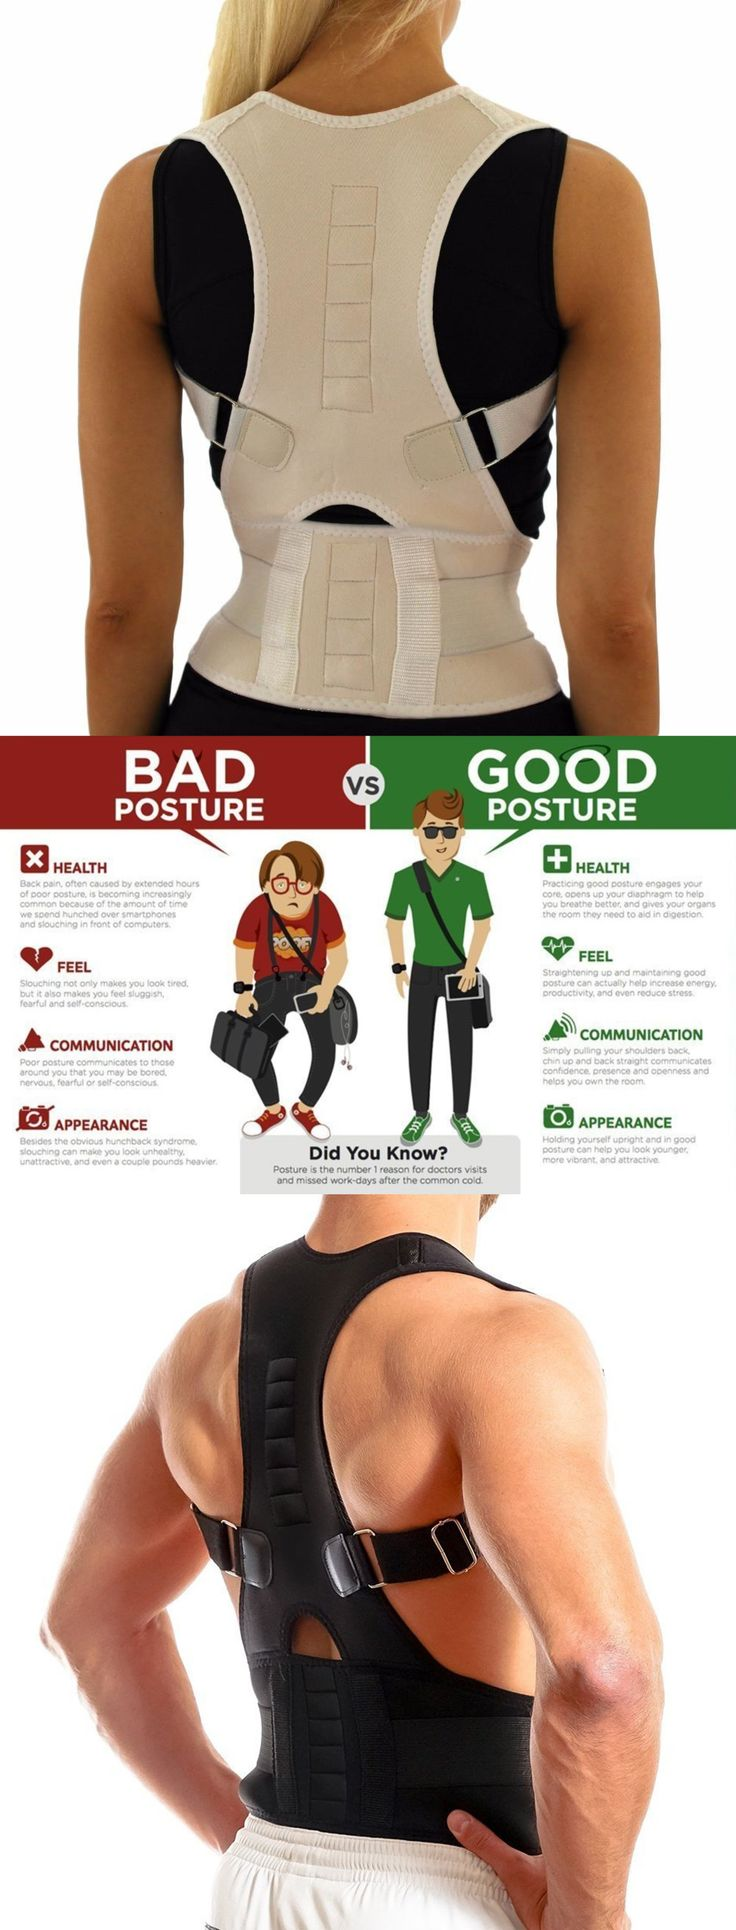 IMPROVE POSTURE - Our StabilityPro™ Posture brace works by training your muscles and spine to return to their natural alignment.  Bad posture, left unchecked, can cause pain, lethargy, and even lead to nerve damage. Our back brace, coupled with physical therapy, aids in the treatment of Back Pain, Scoliosis, Spondylolisthesis, and Thoracic Outlet Syndrome.